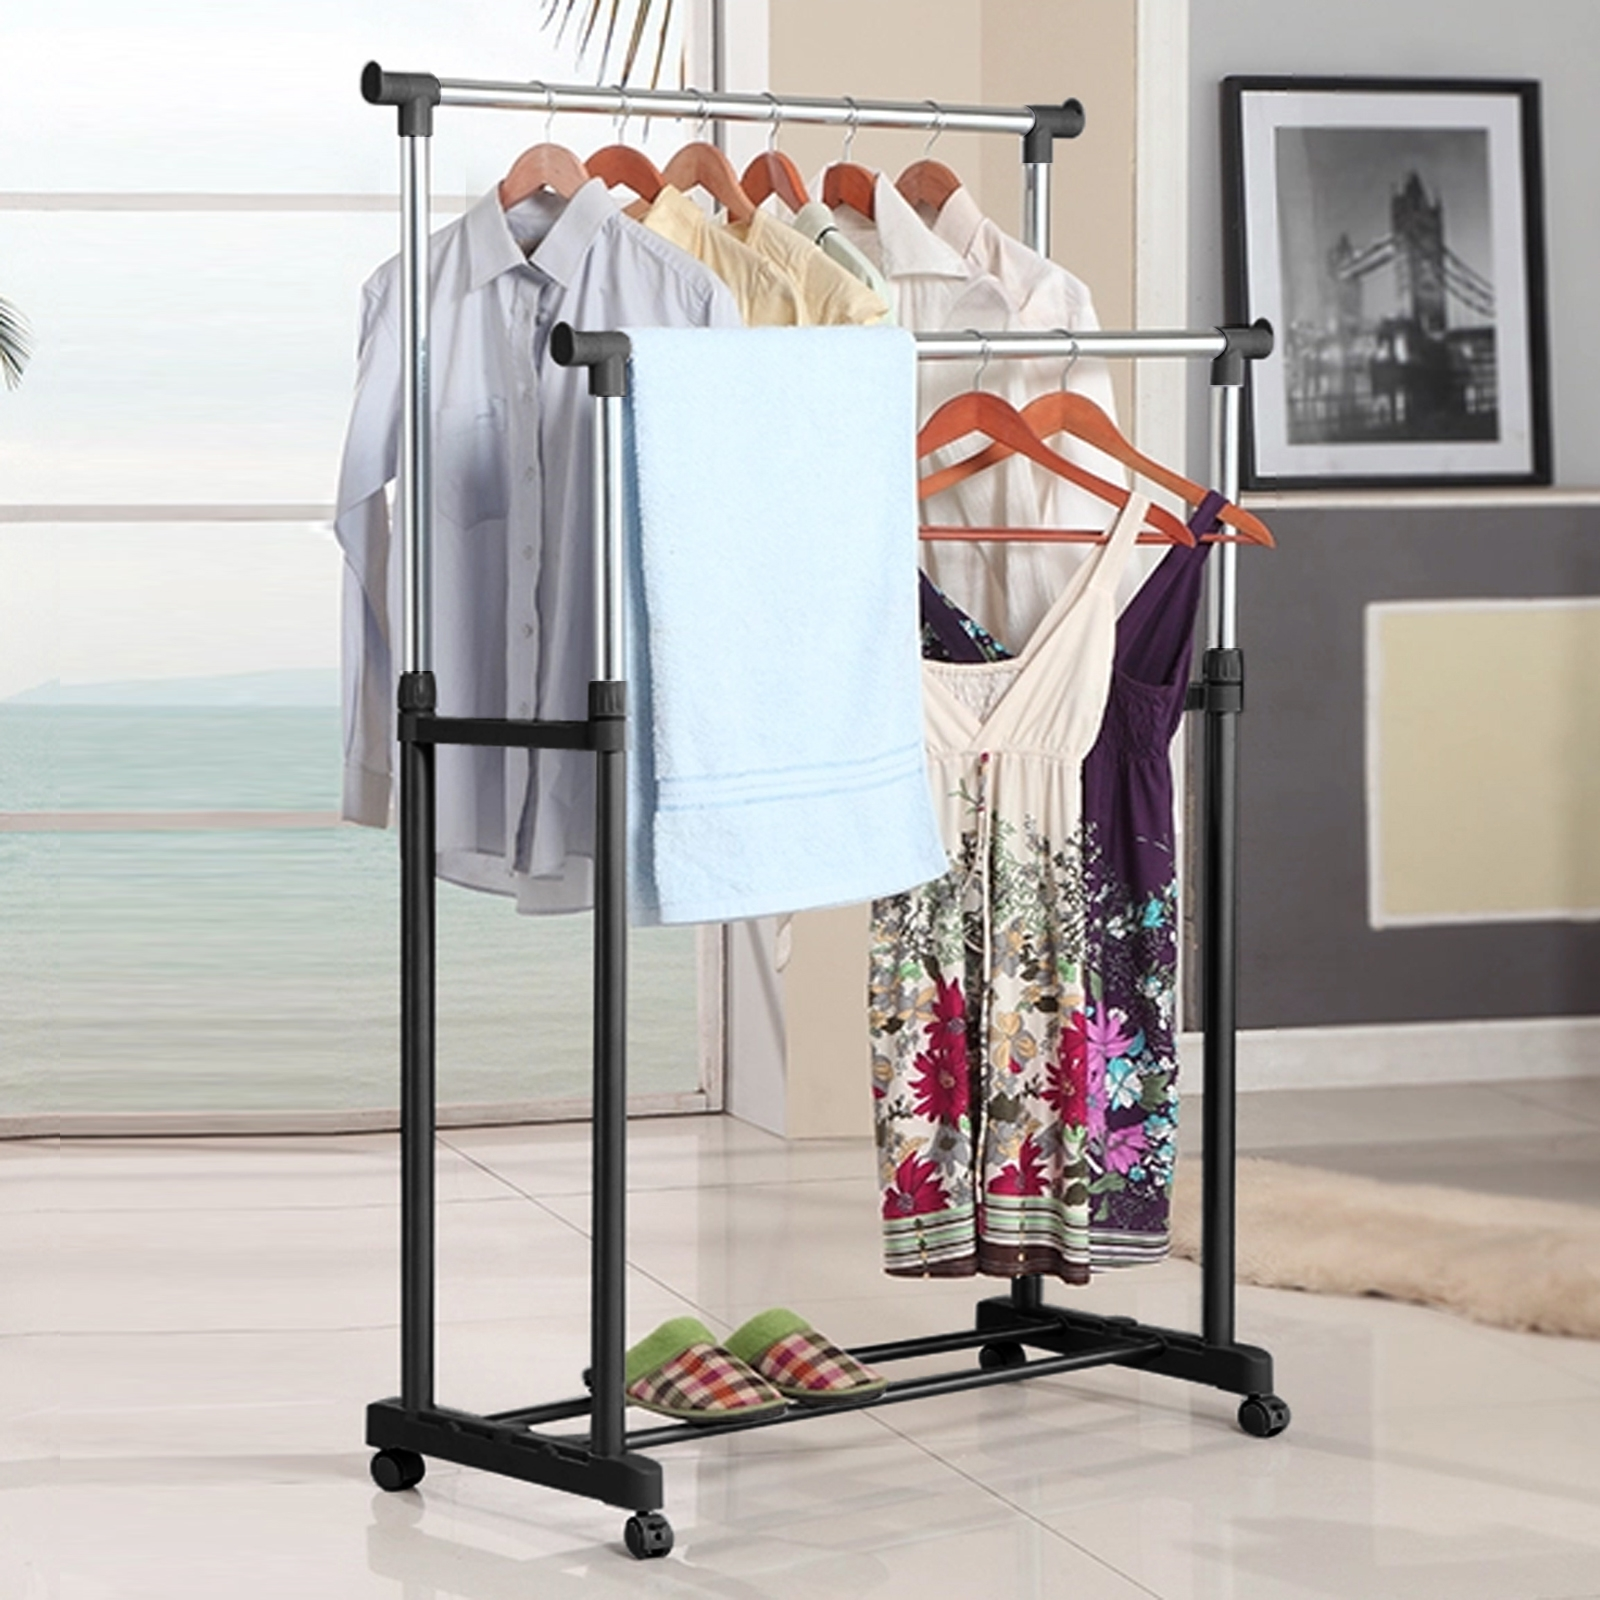 Double Rail Garment Rack Adjustable Rolling Clothes Drying Rack Laundry Hanger